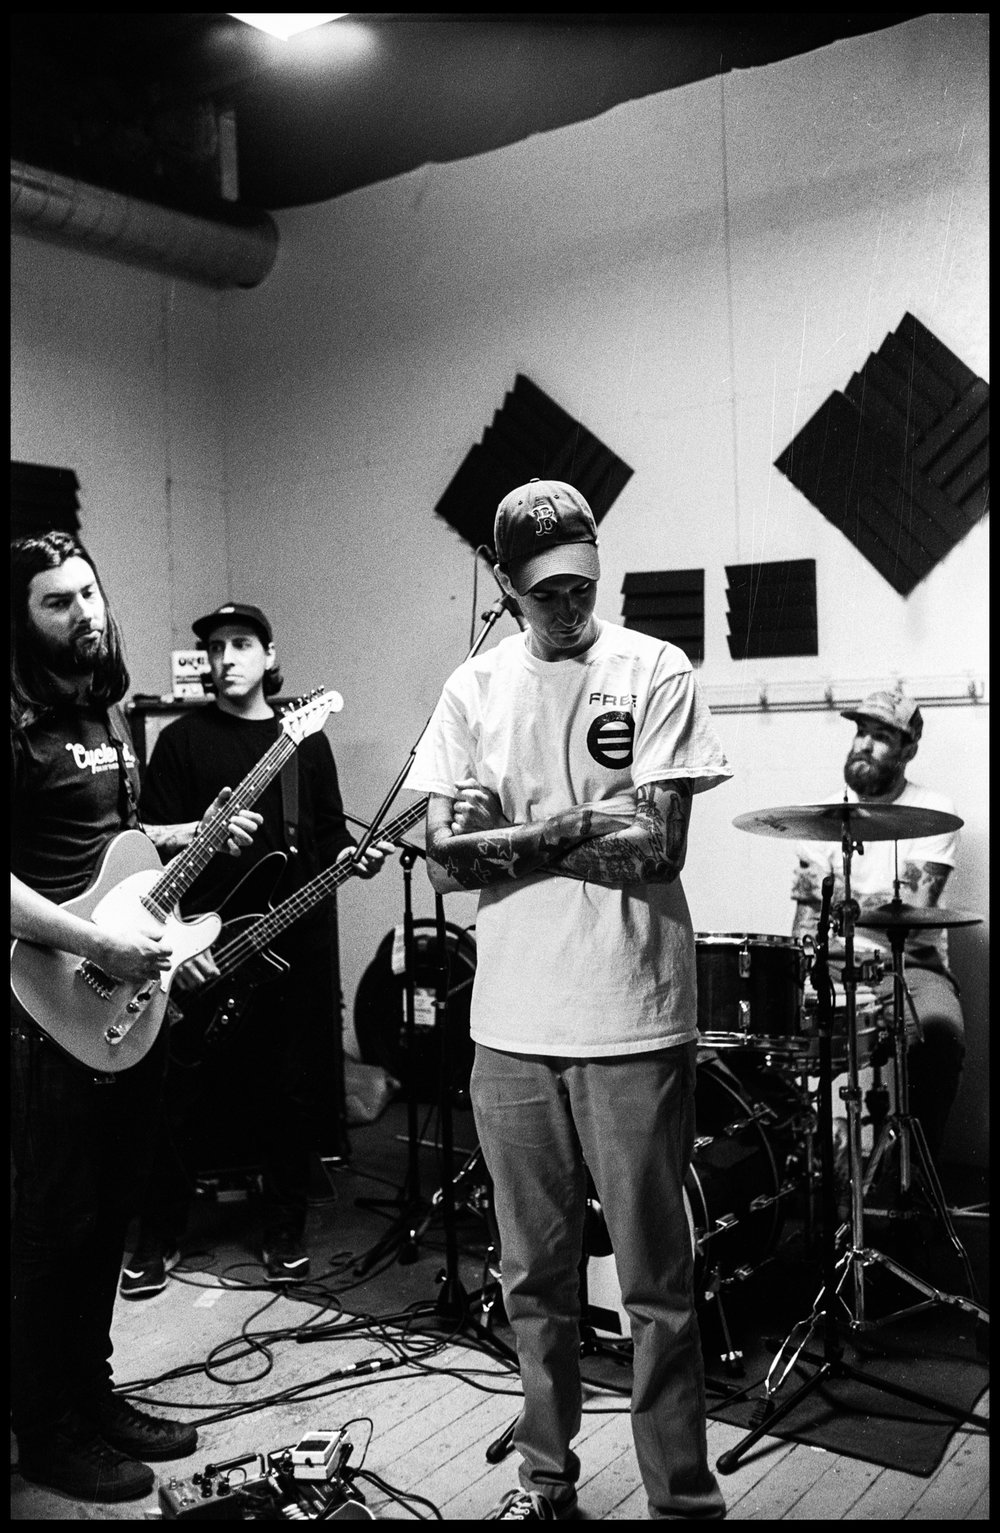 nick dinatale_defeater 2017_epitaph records_writing session_35mm film leica-1.jpg